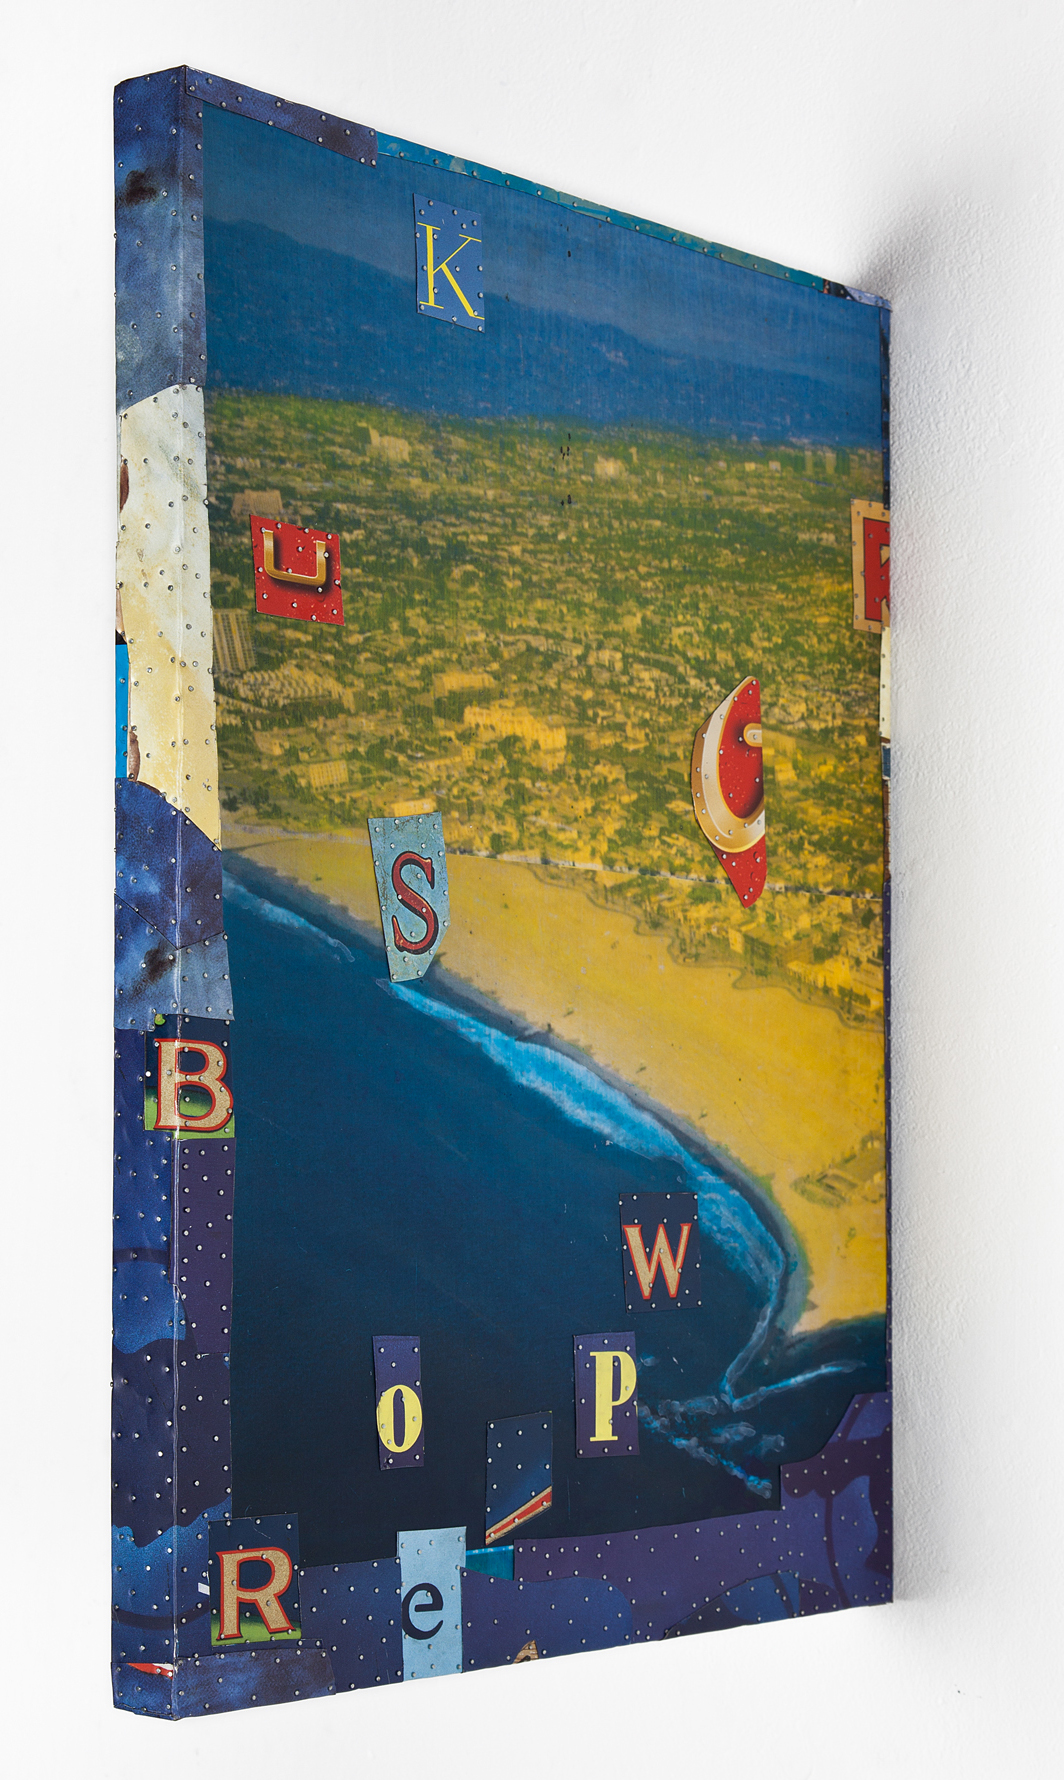 """Tony Berlant, """"The Sunny Side,"""" 2016, found and fabricated printed tin collaged on plywood with steel brads, 23 1/4 x 16 3/4 x 1 1/2 inches"""